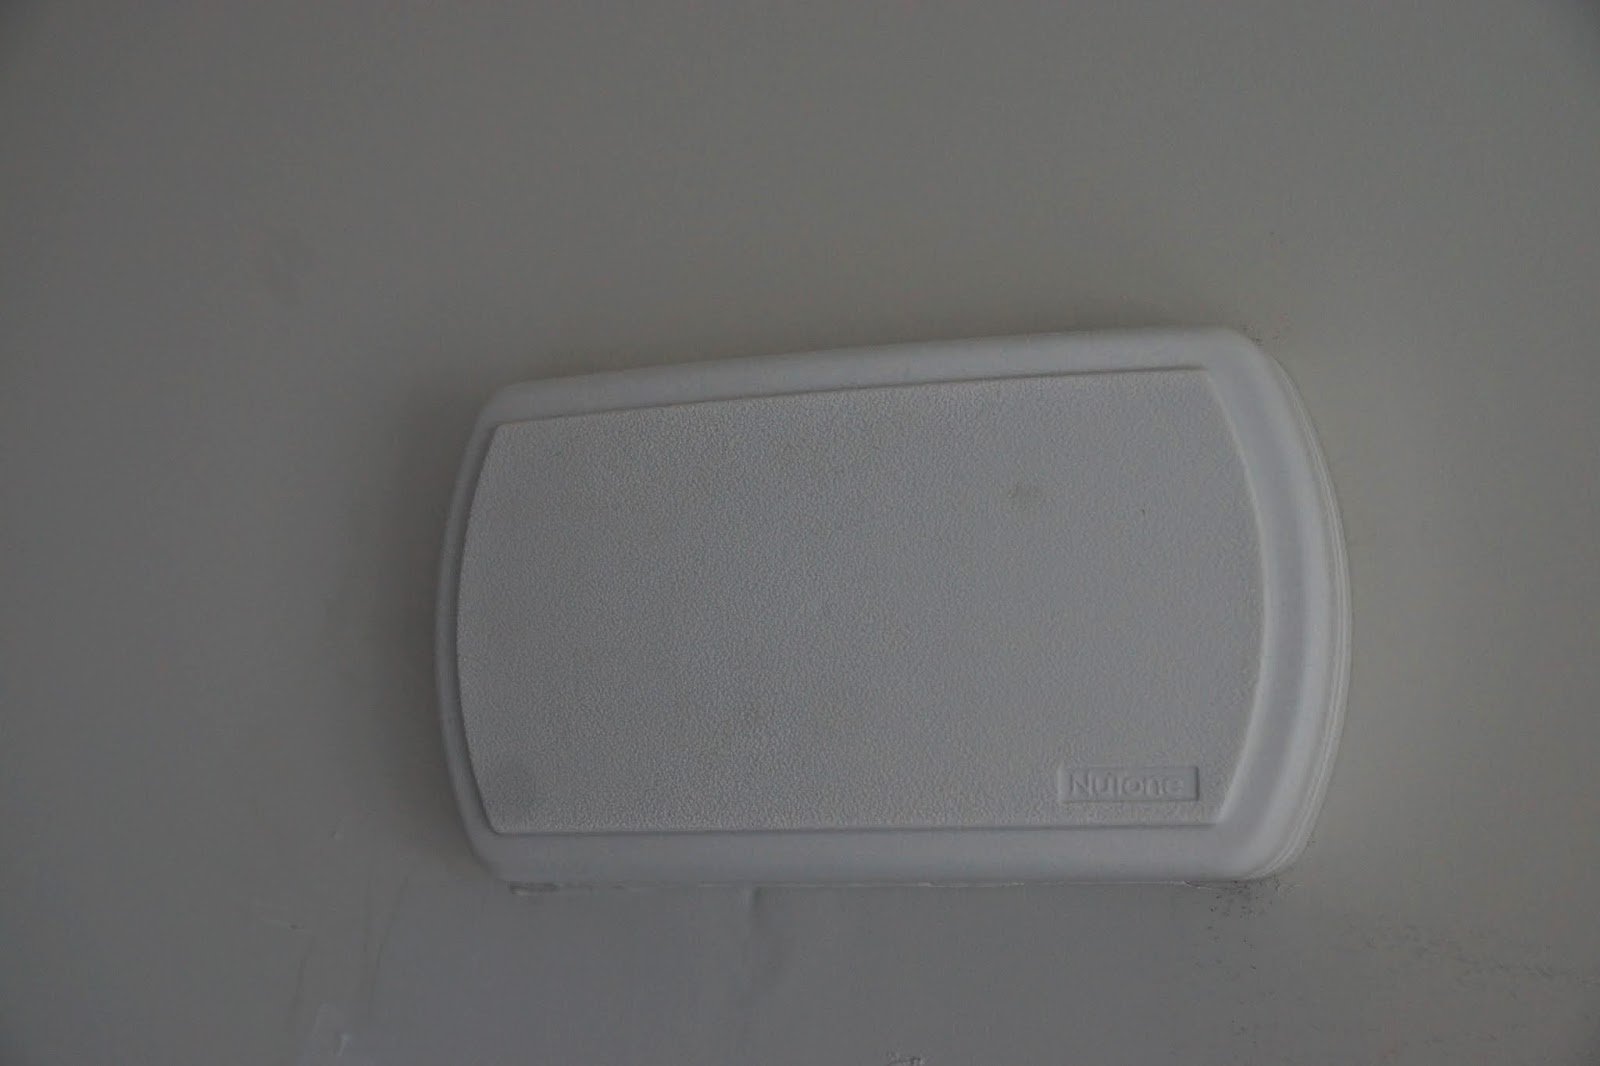 A picture of the doorbell